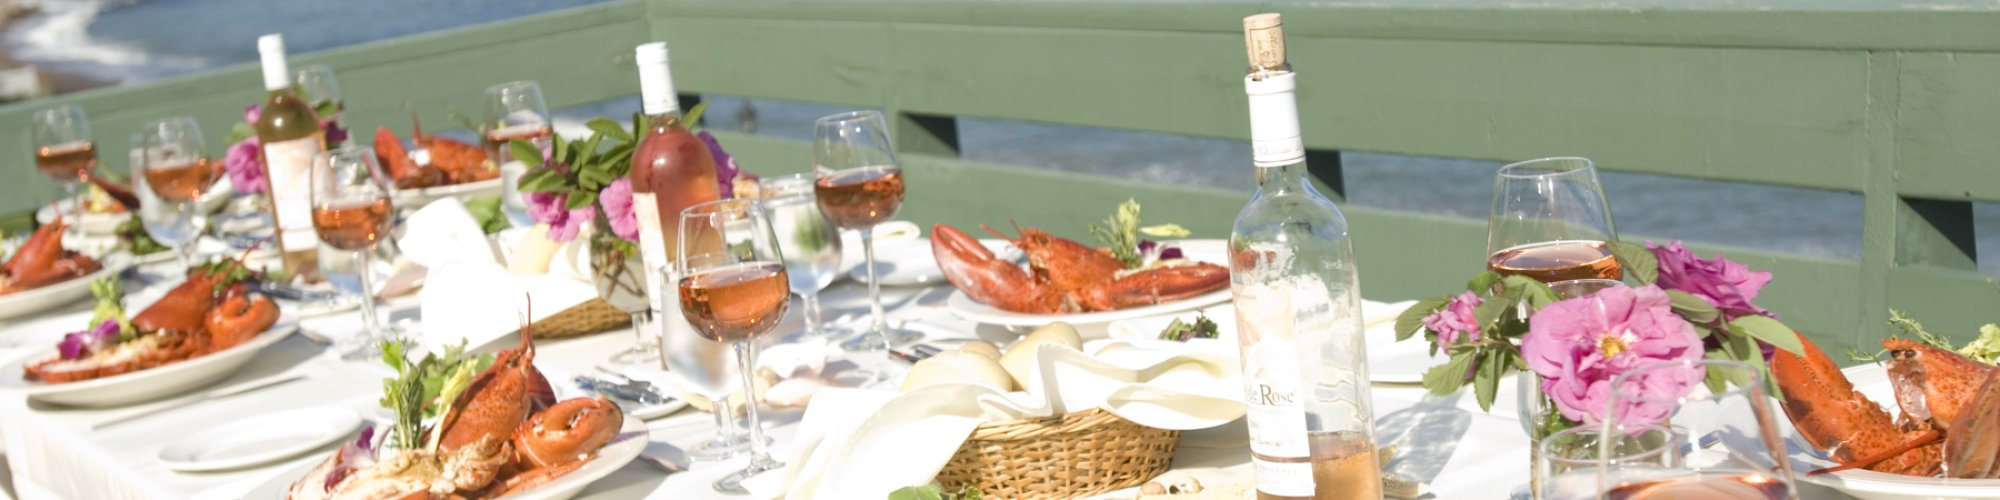 Lobster meal on a terrace, view of the sea and Percé Rock